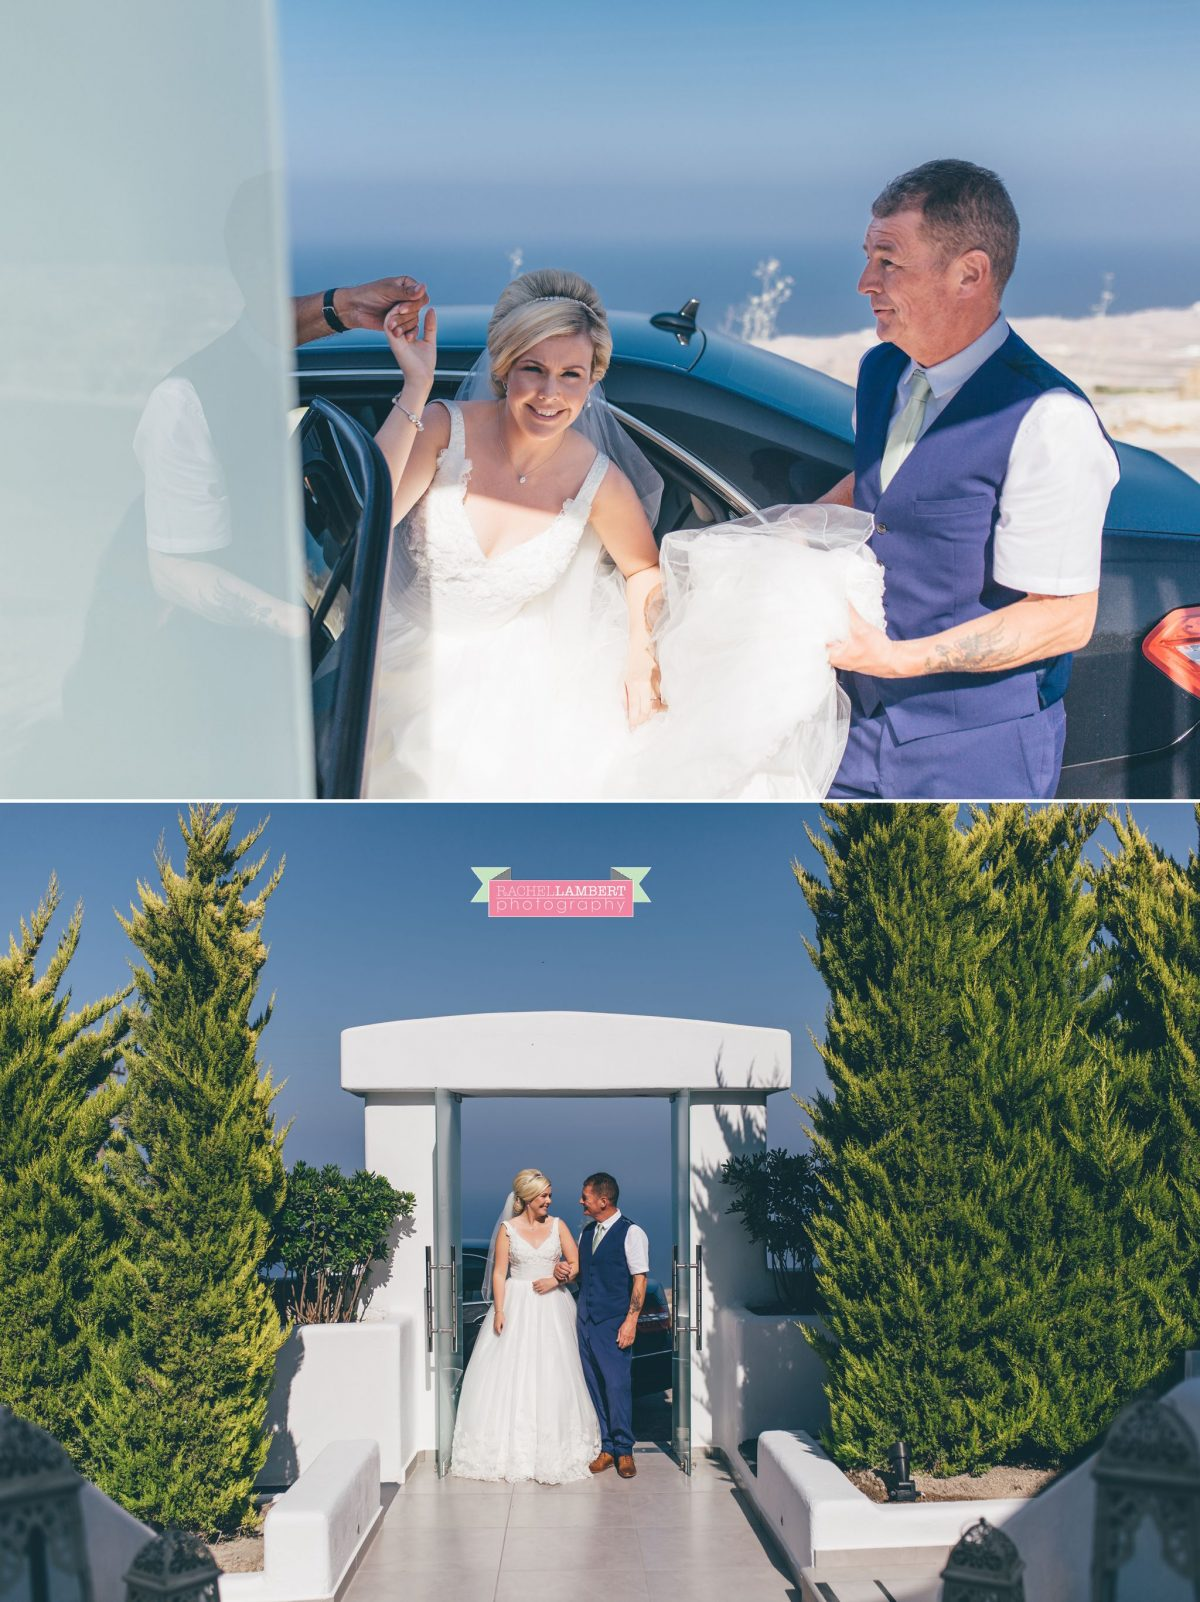 destination_wedding_photographer_santorini_greece_leCiel_rachel_lambert_photography_ 33